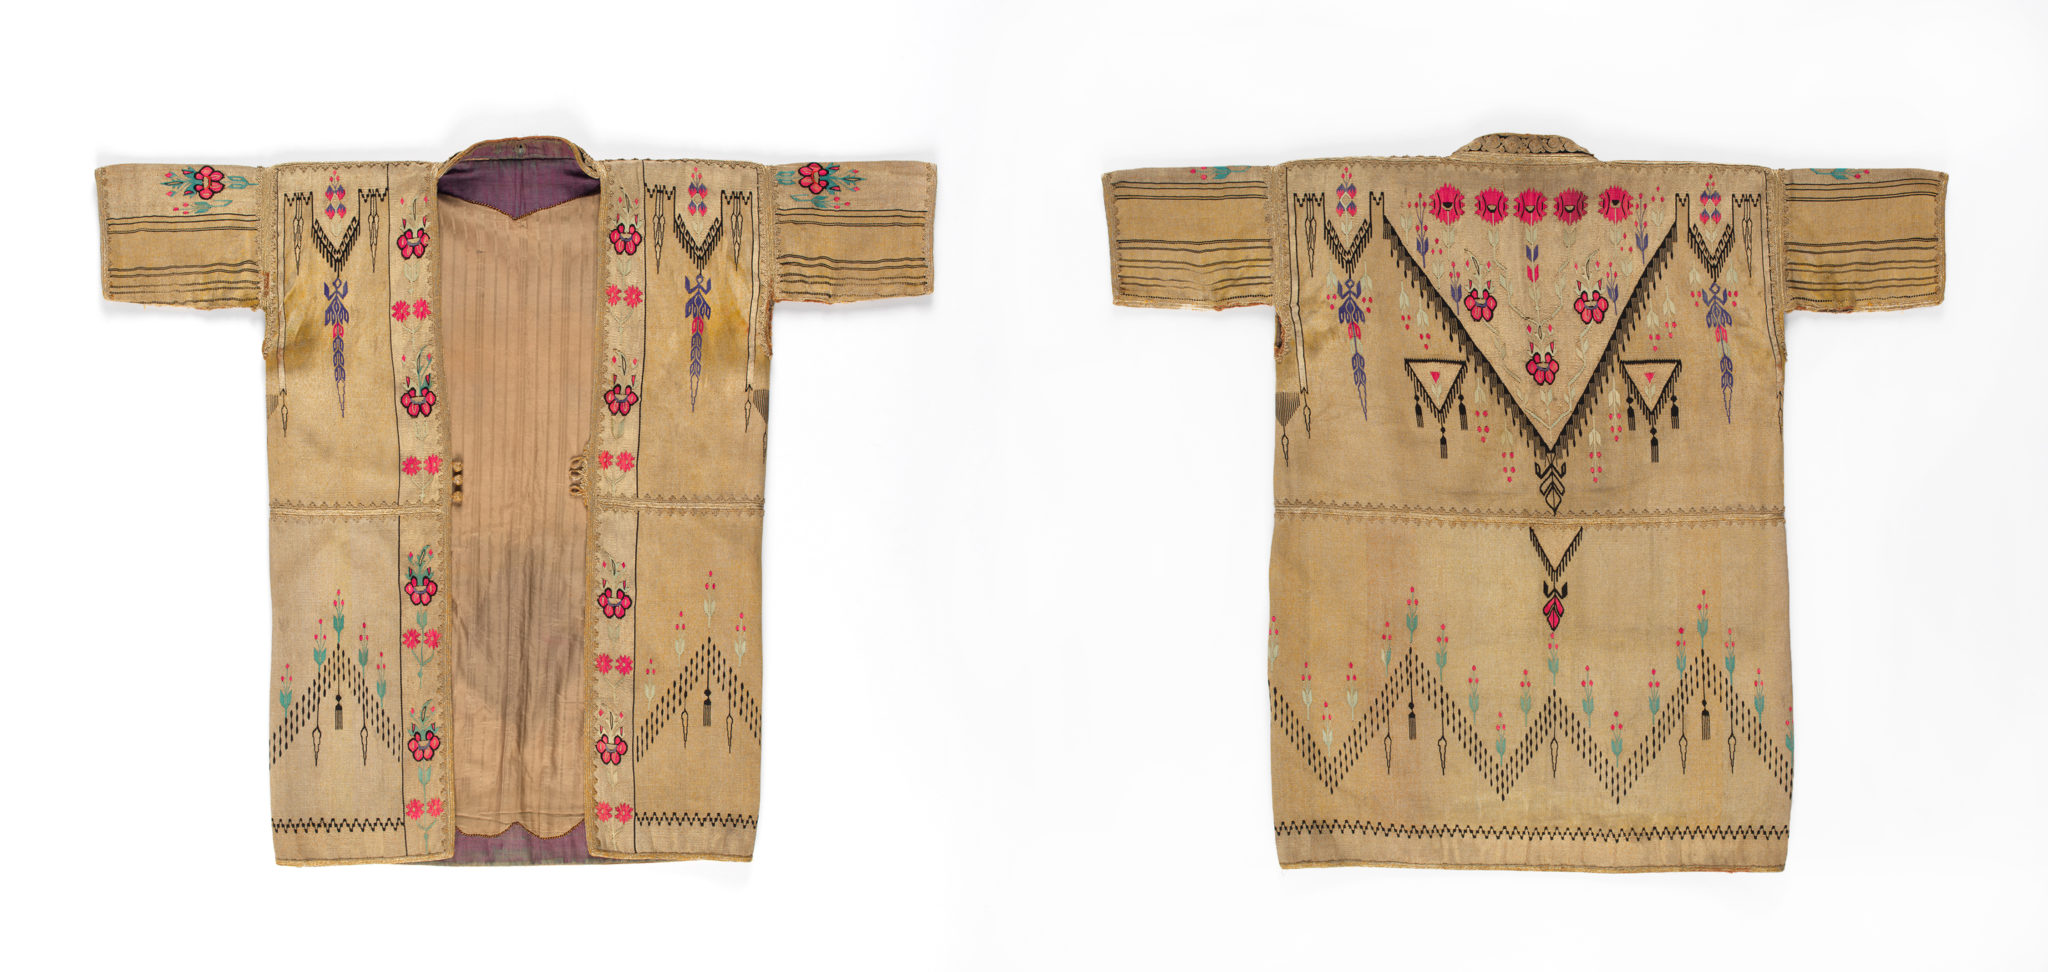 Woman's jacket from Syria, late 19th - early 20th cent., front and back (Fowler Museum at UCLA X2018.20.3).